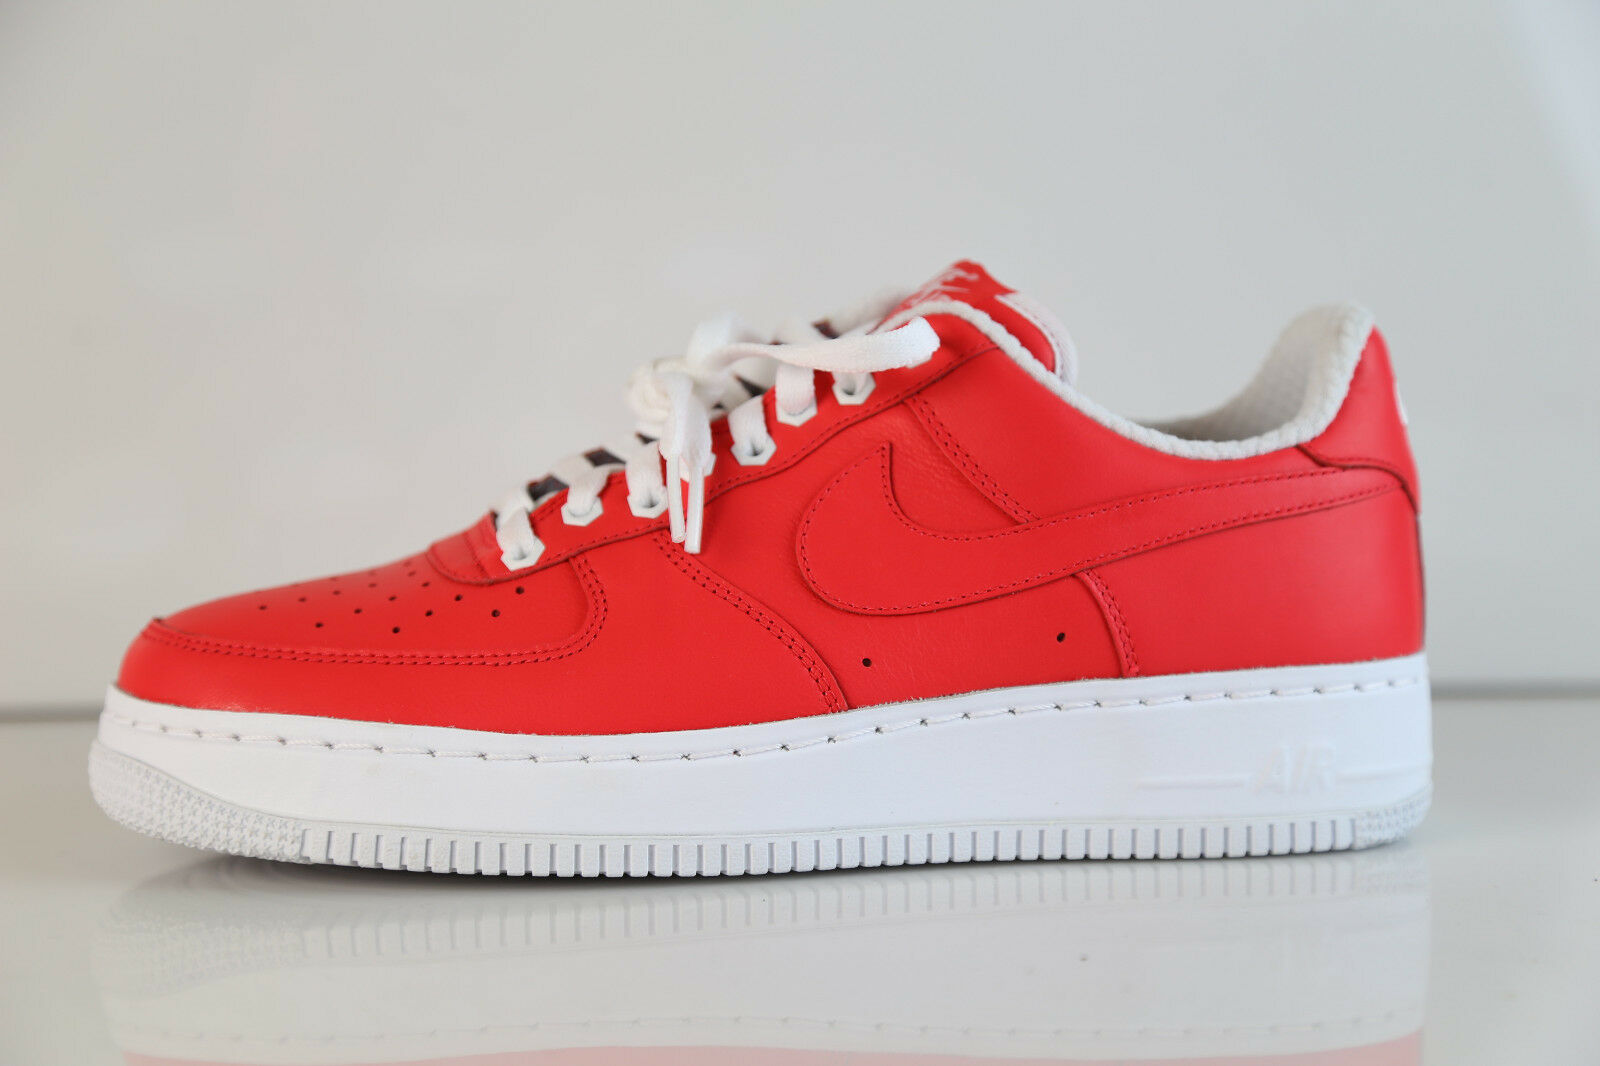 Nike iD Air Force 1 PRM Low Solar Pink Red Leather Sz 10 af1 premium Comfortable and good-looking